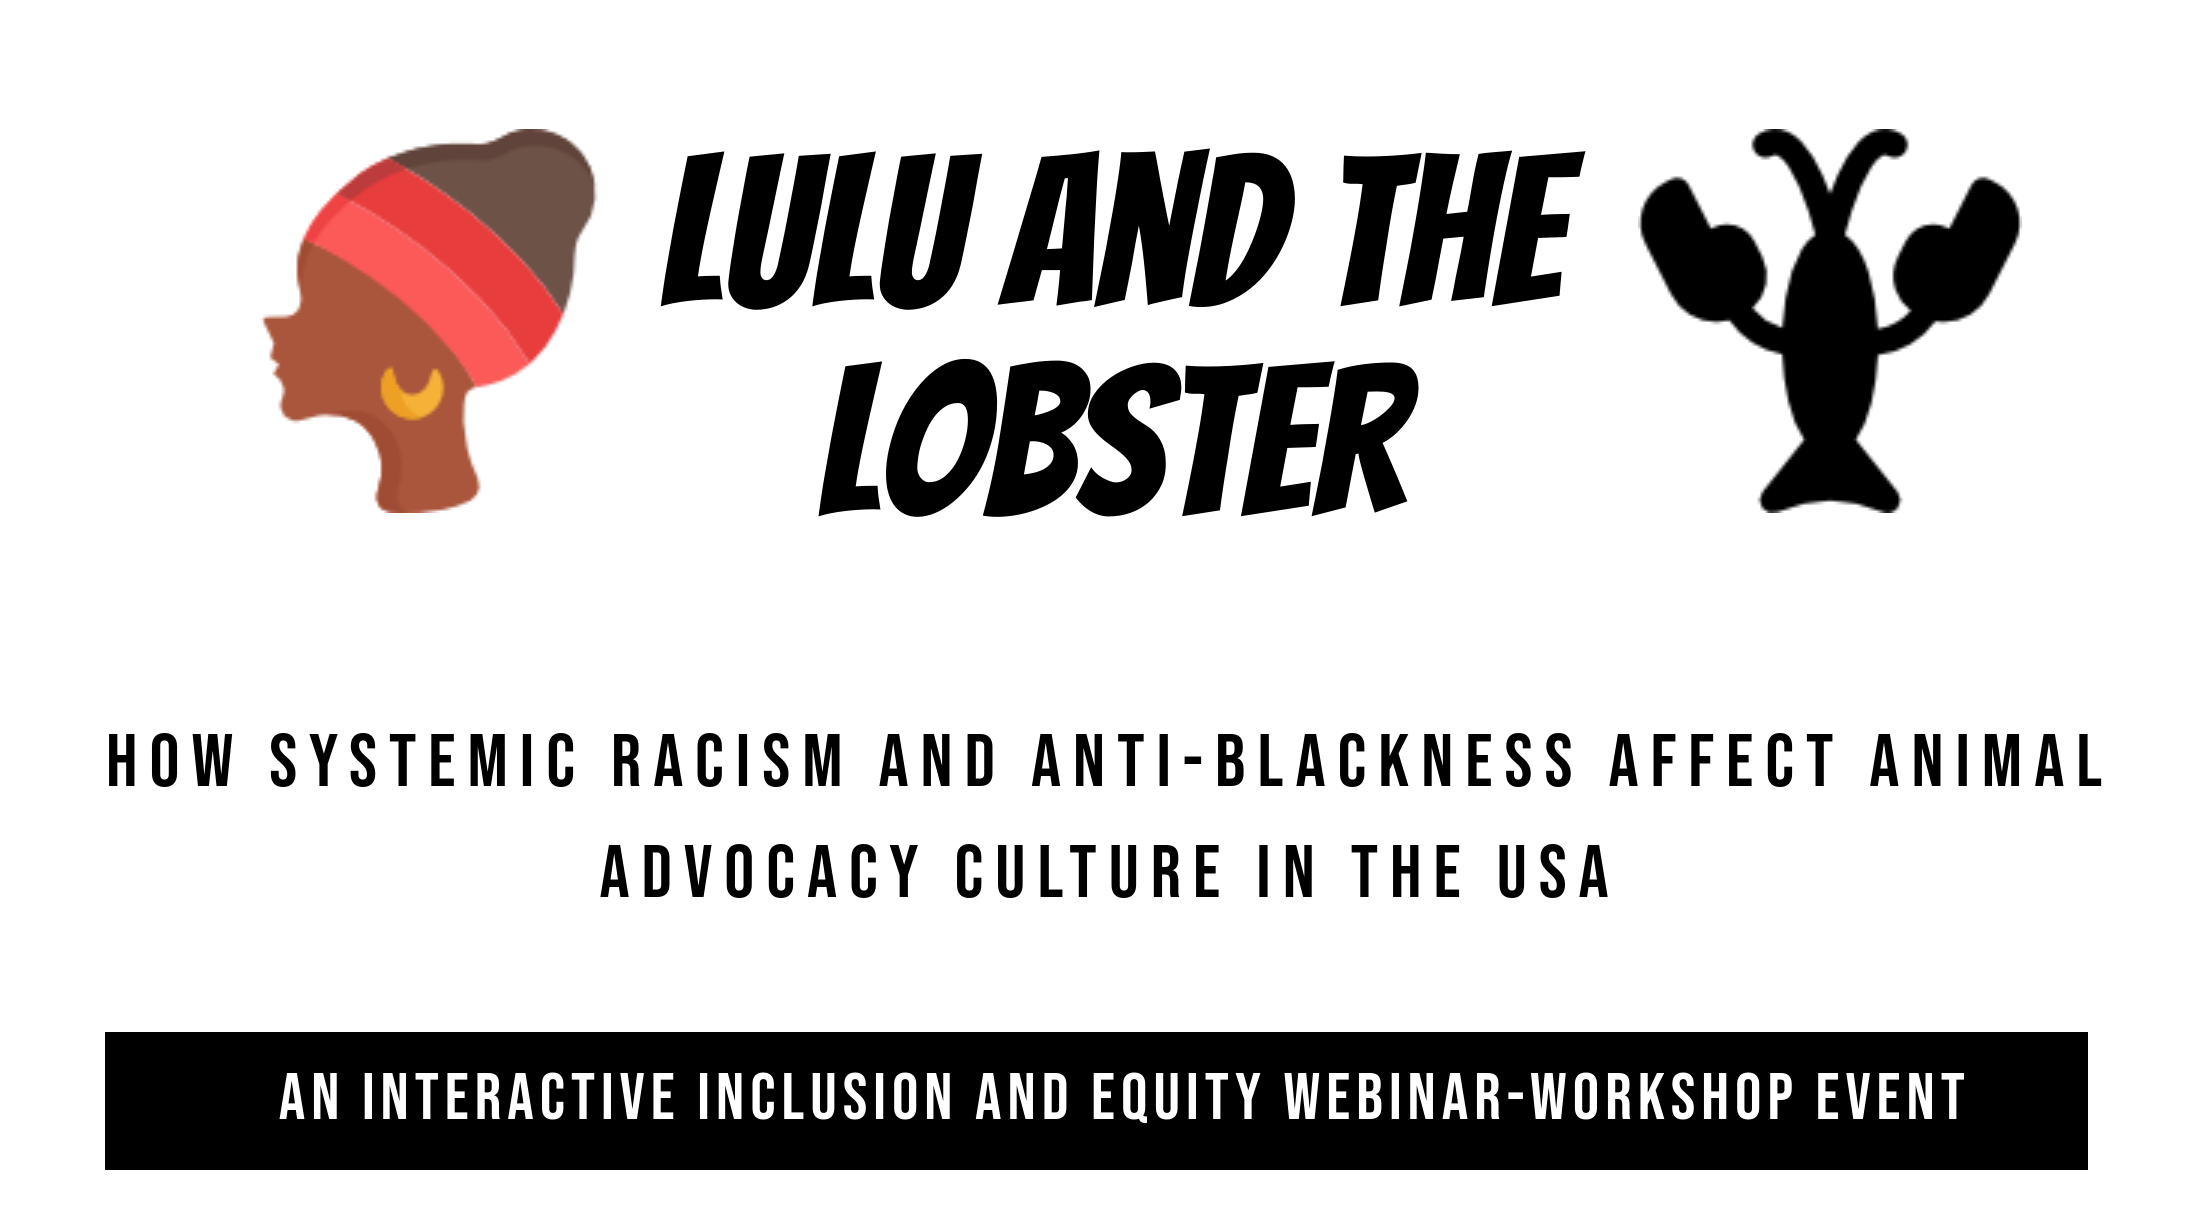 Online Workshop: How Systemic Racism and Anti-Blackness Affect Animal Advocacy Culture (USA)